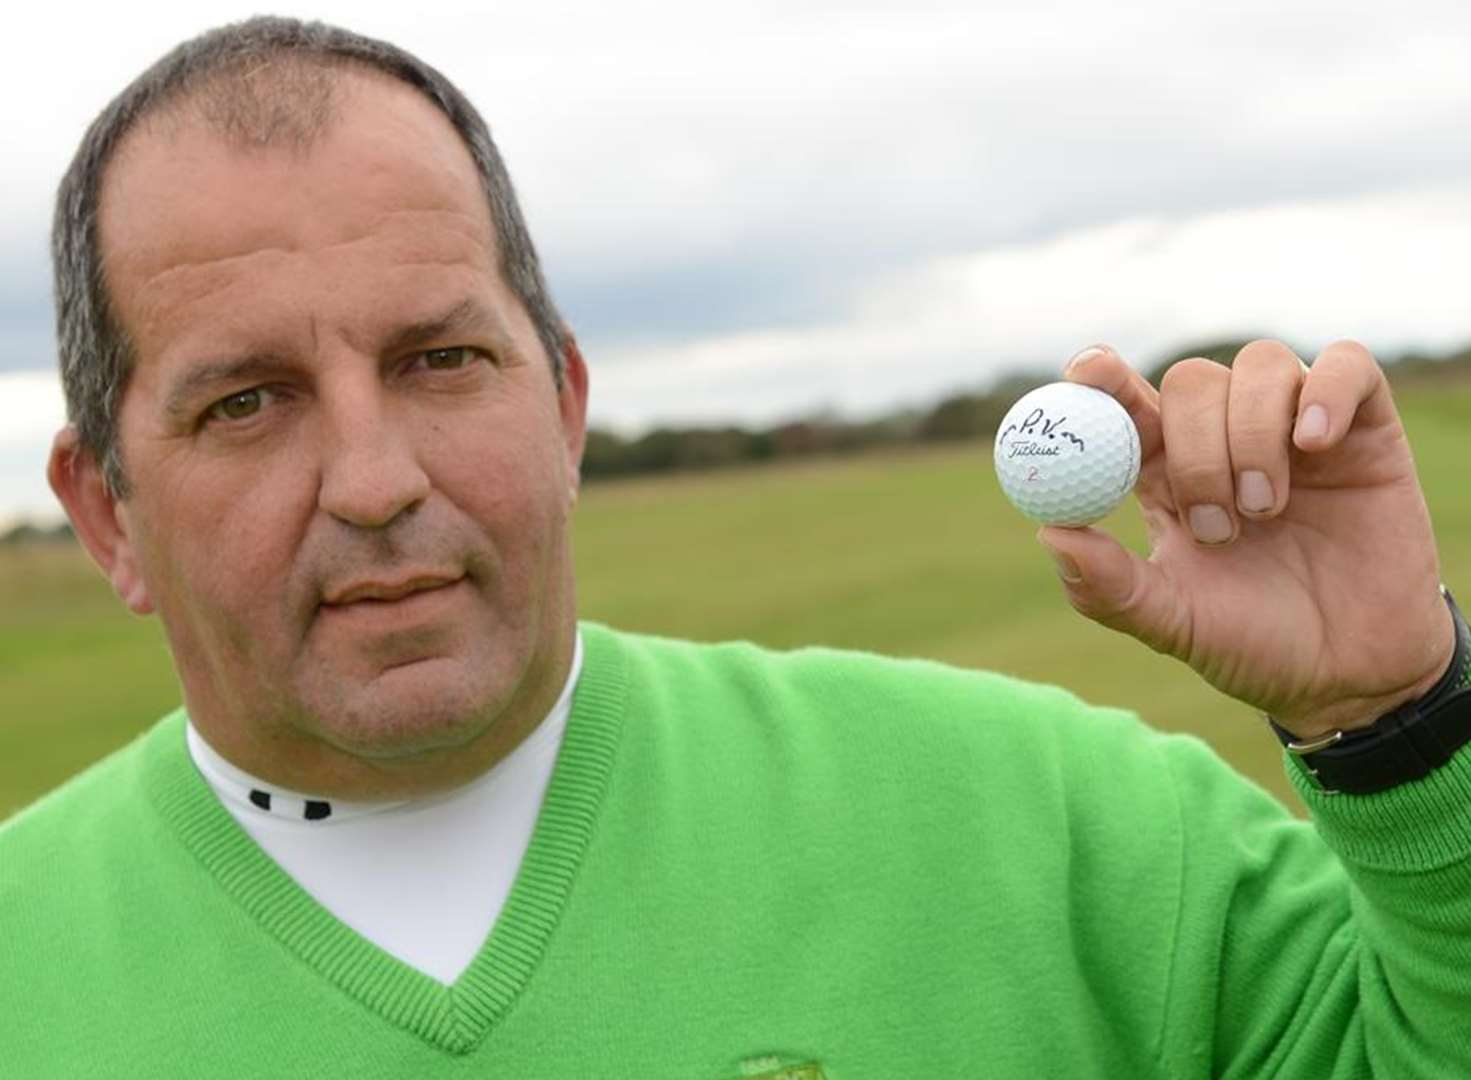 Golfer lays claim to hole-in-one record